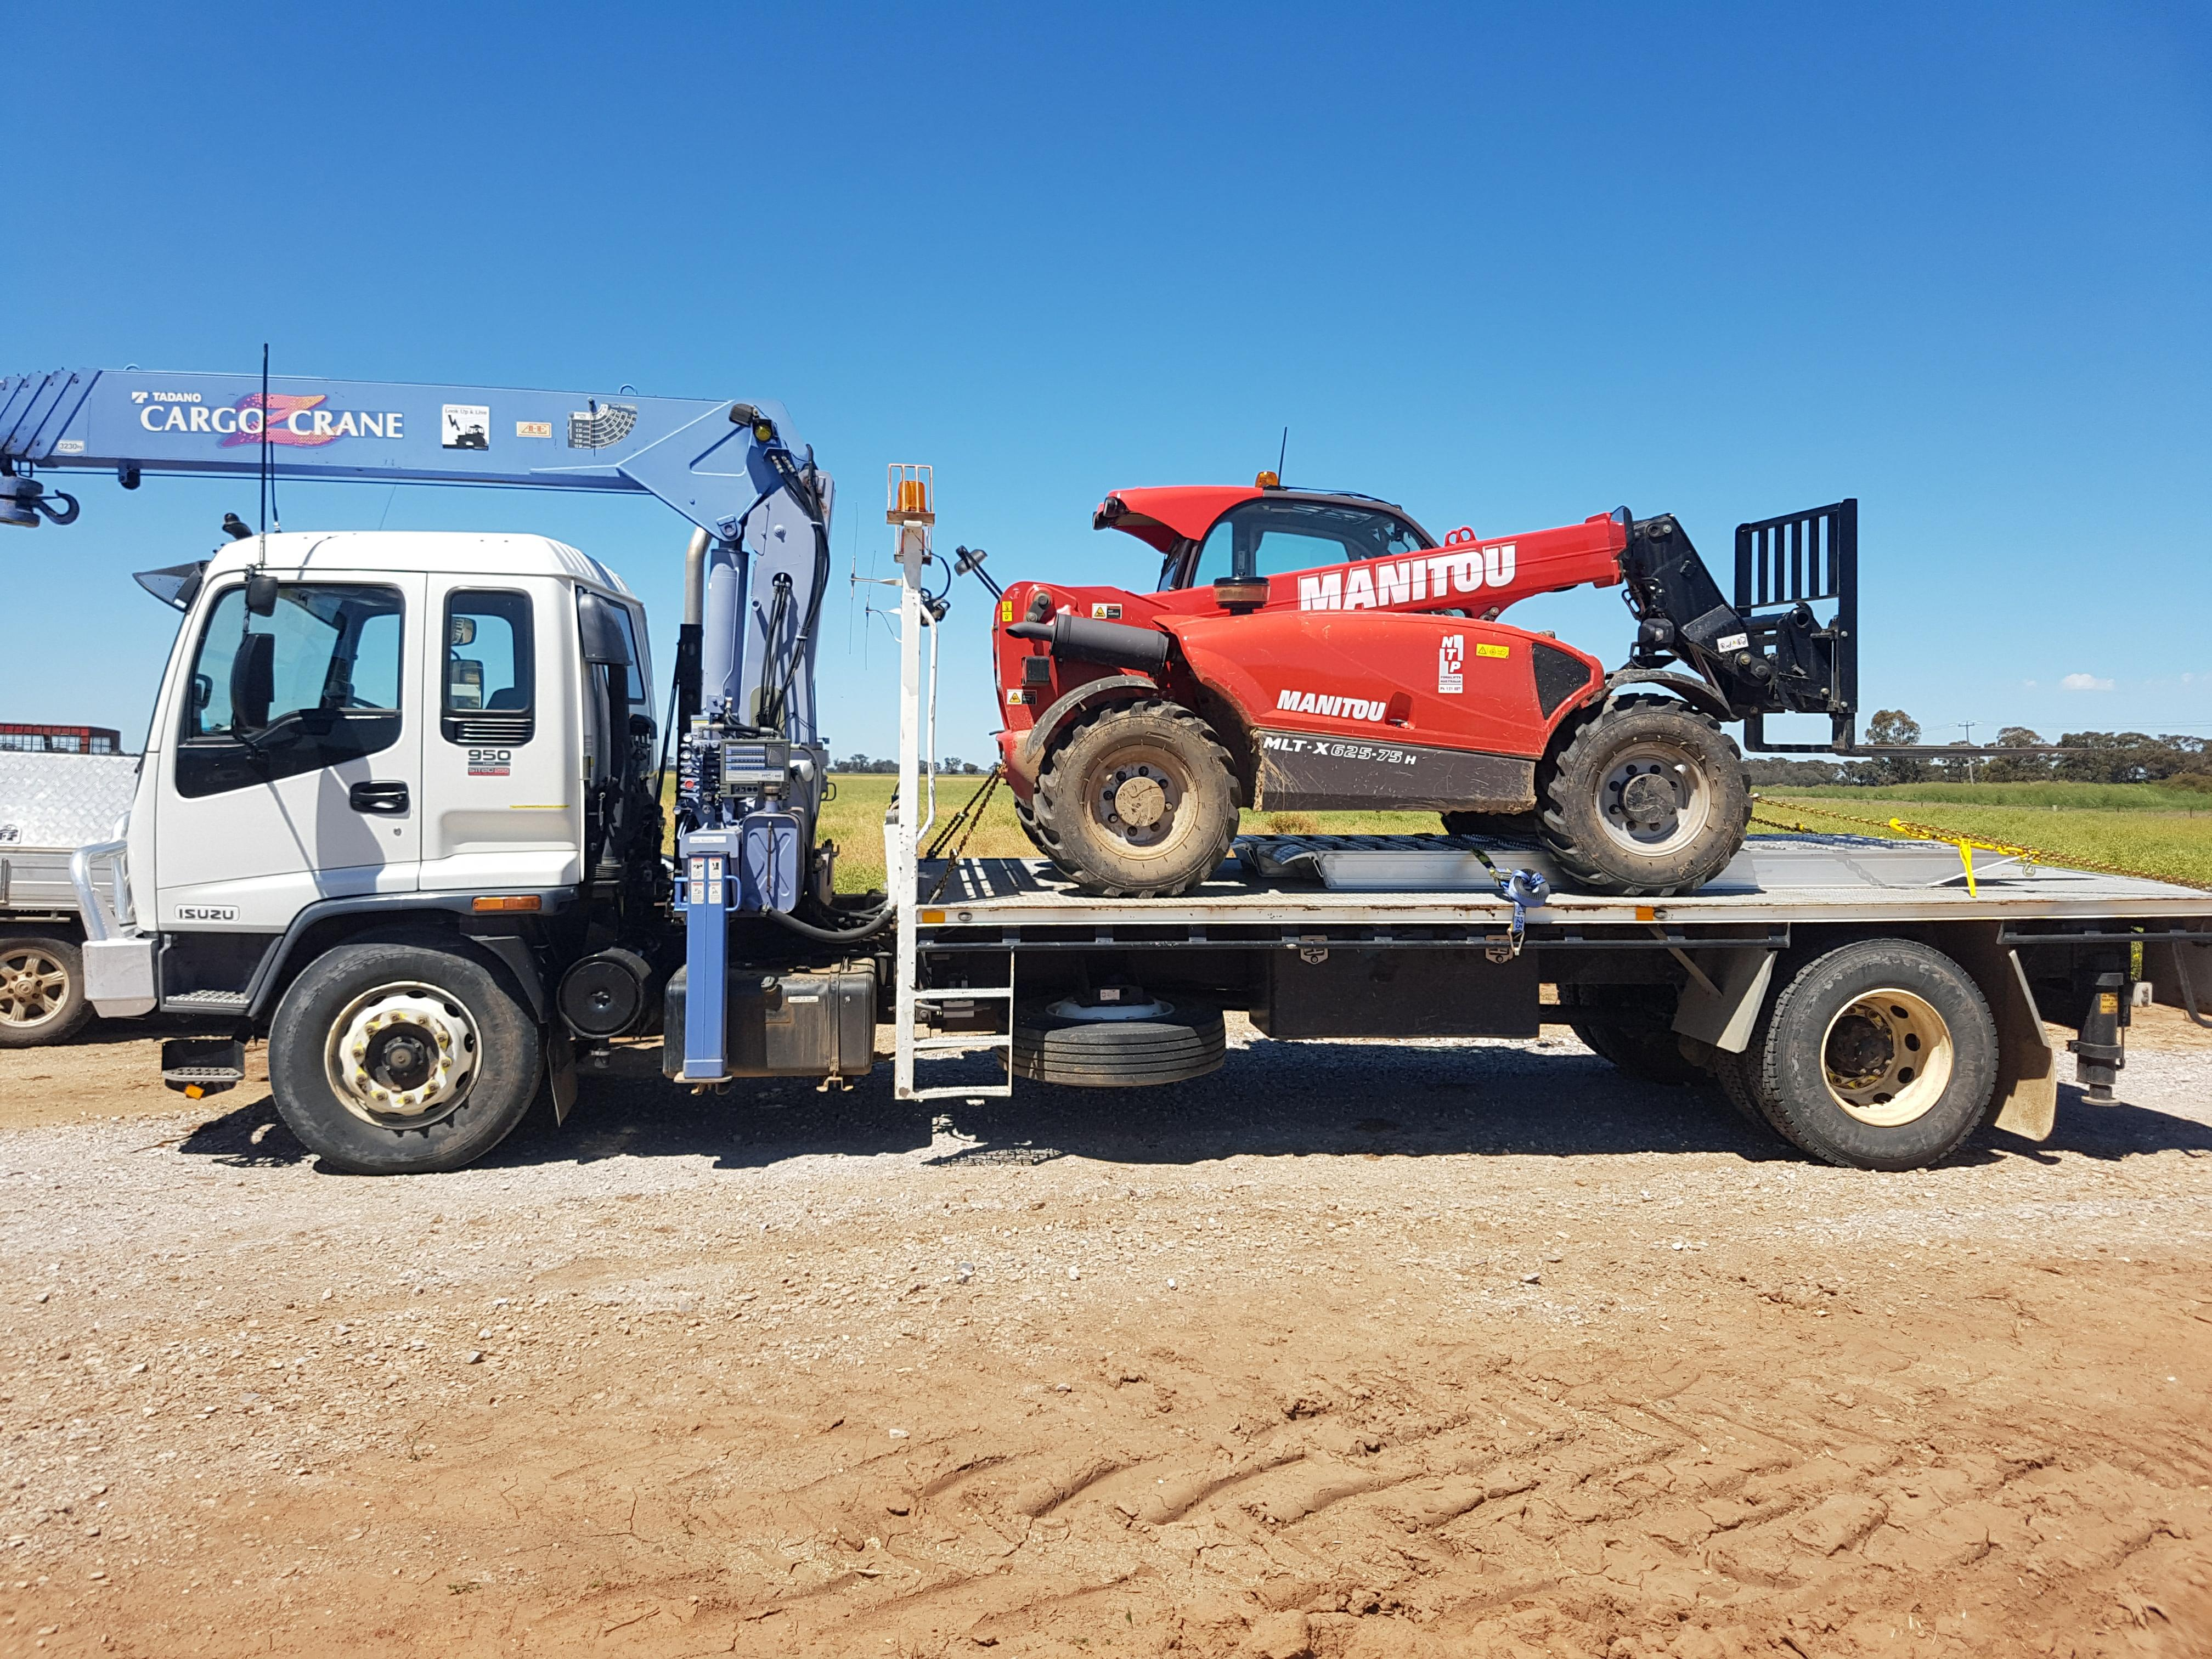 Truck and Manitou